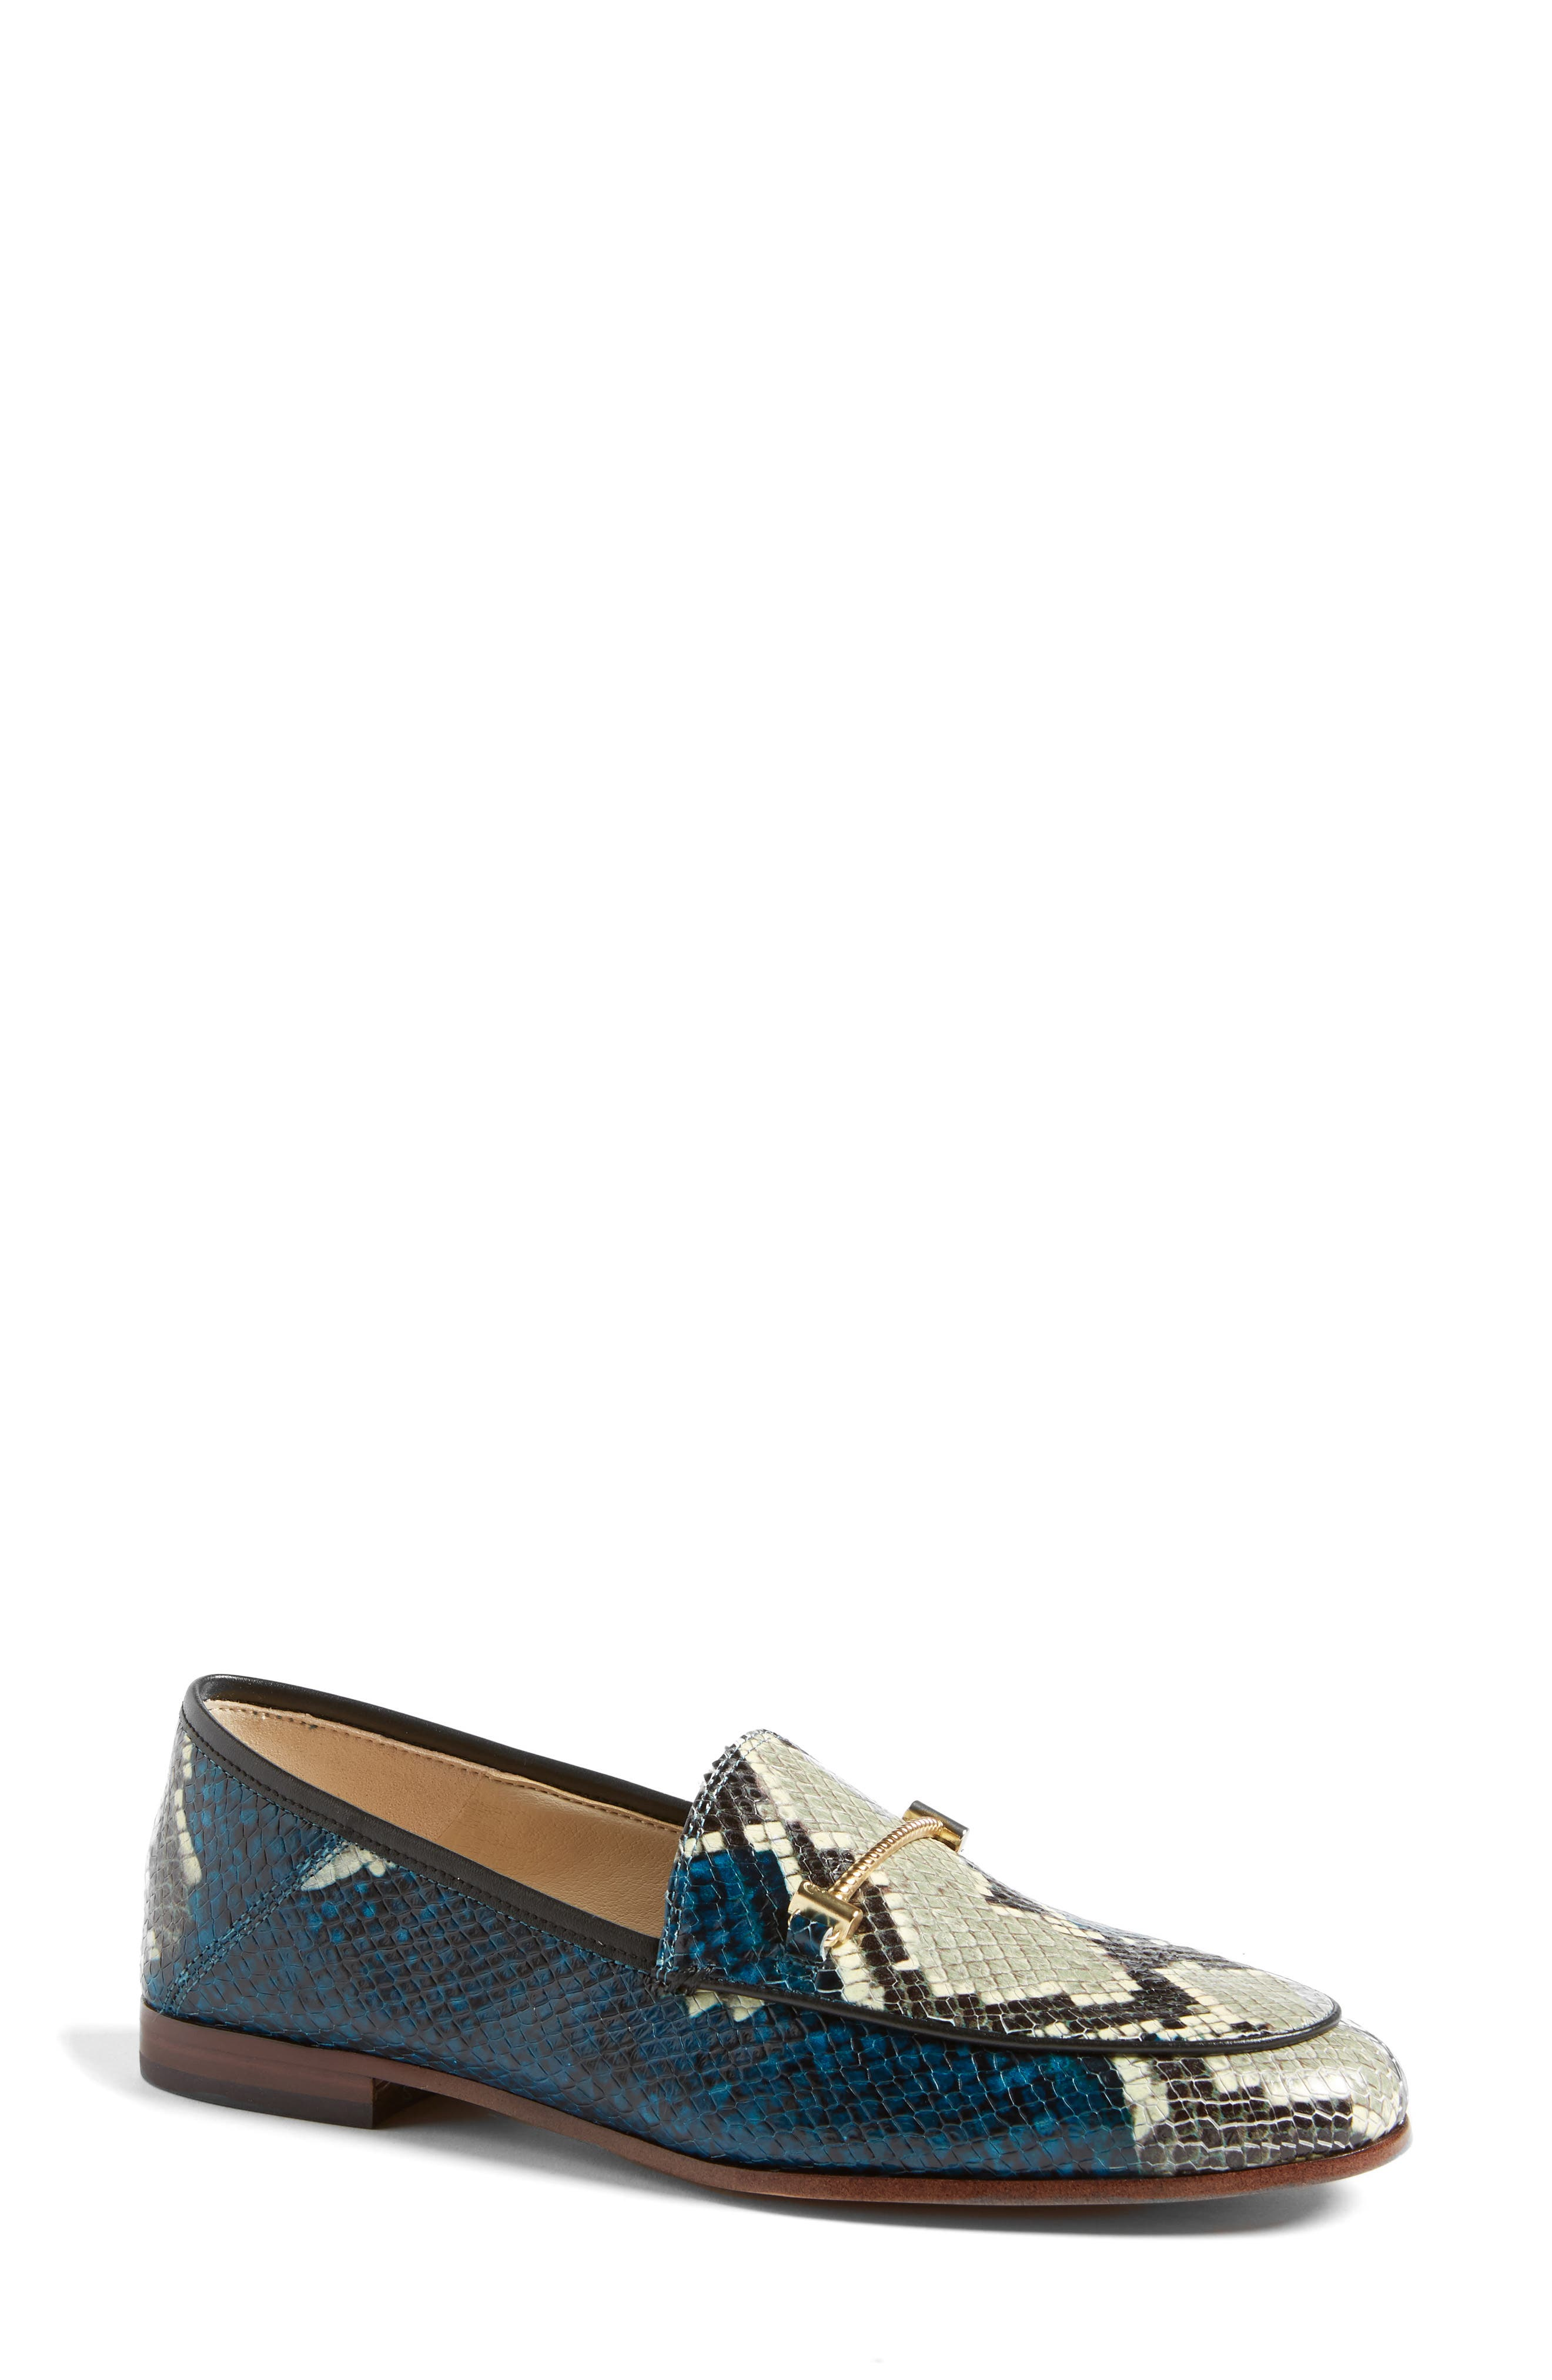 Lior Loafer,                         Main,                         color, Peacock Blue Snake Print